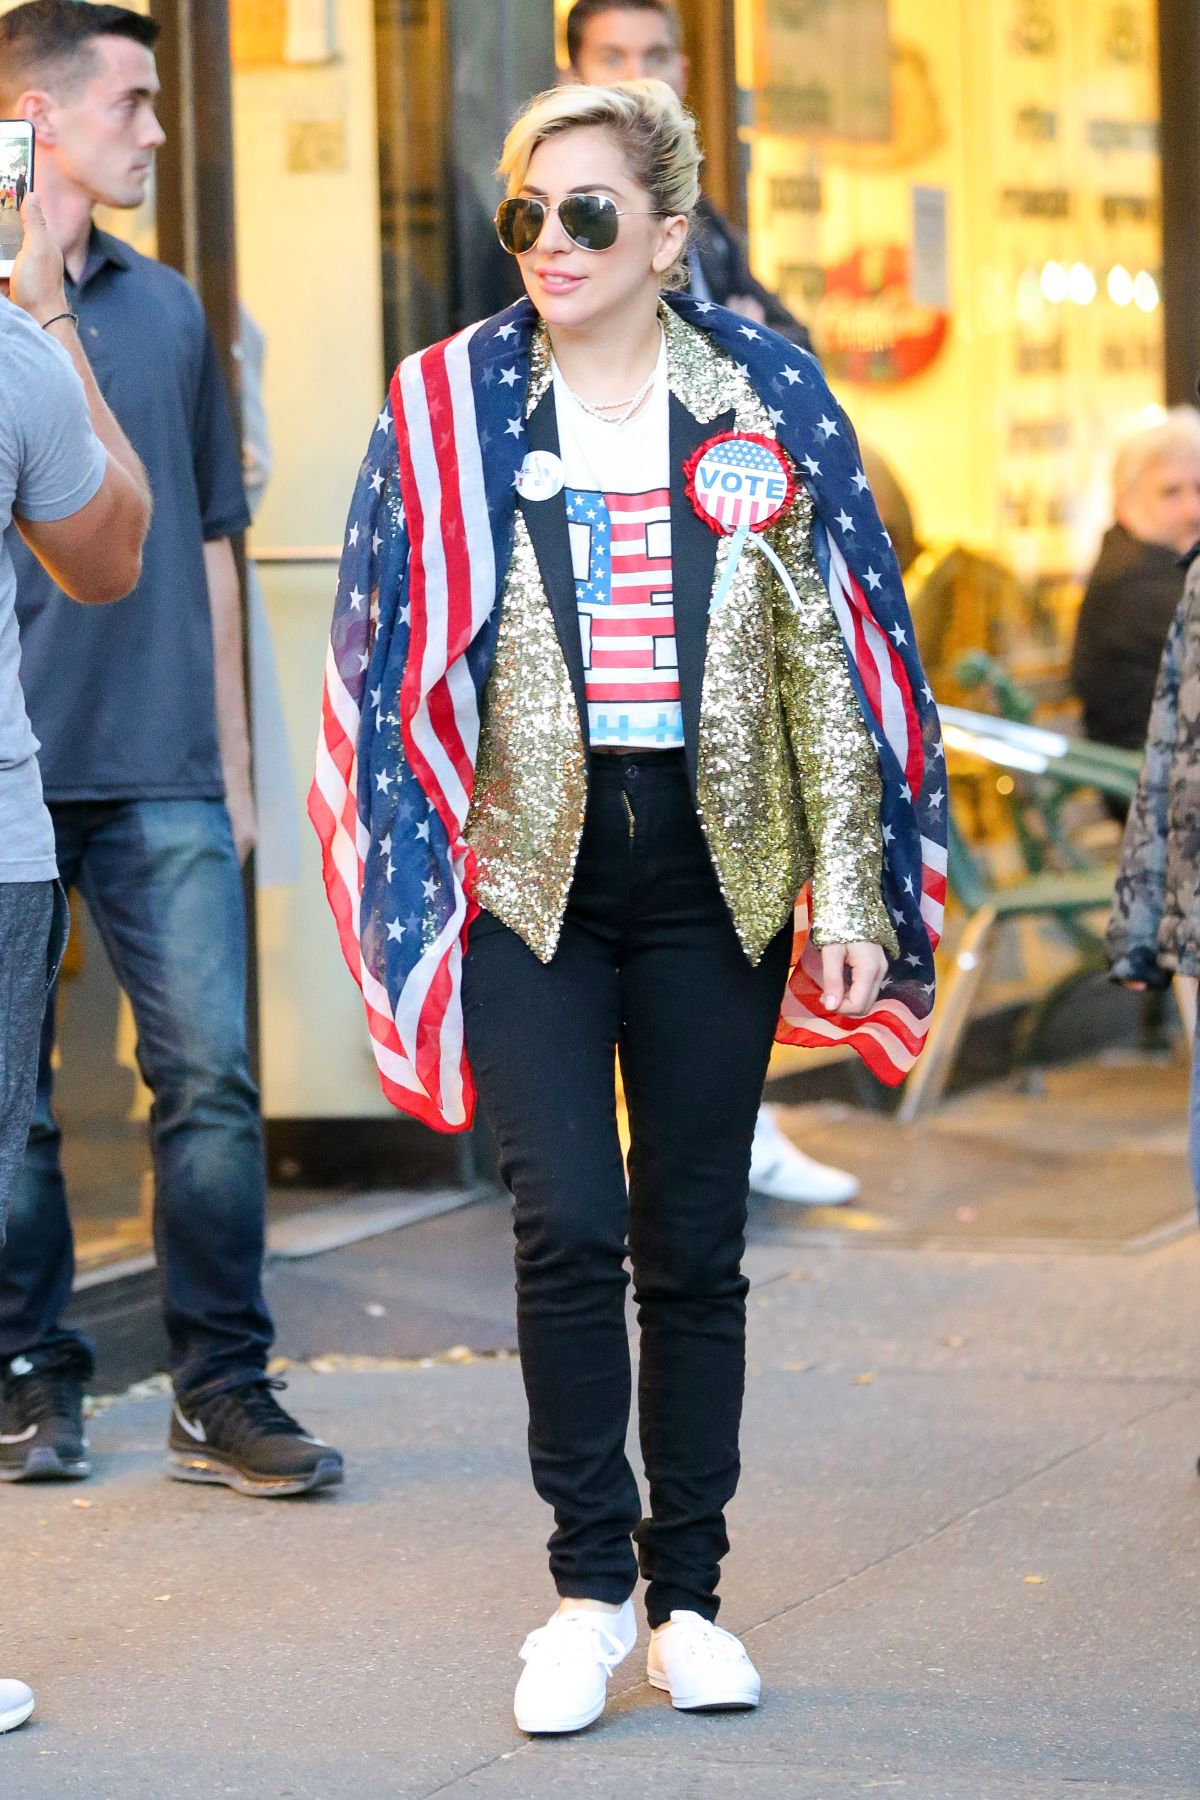 lady-gaga-arrives-at-the-polls-to-vote-i